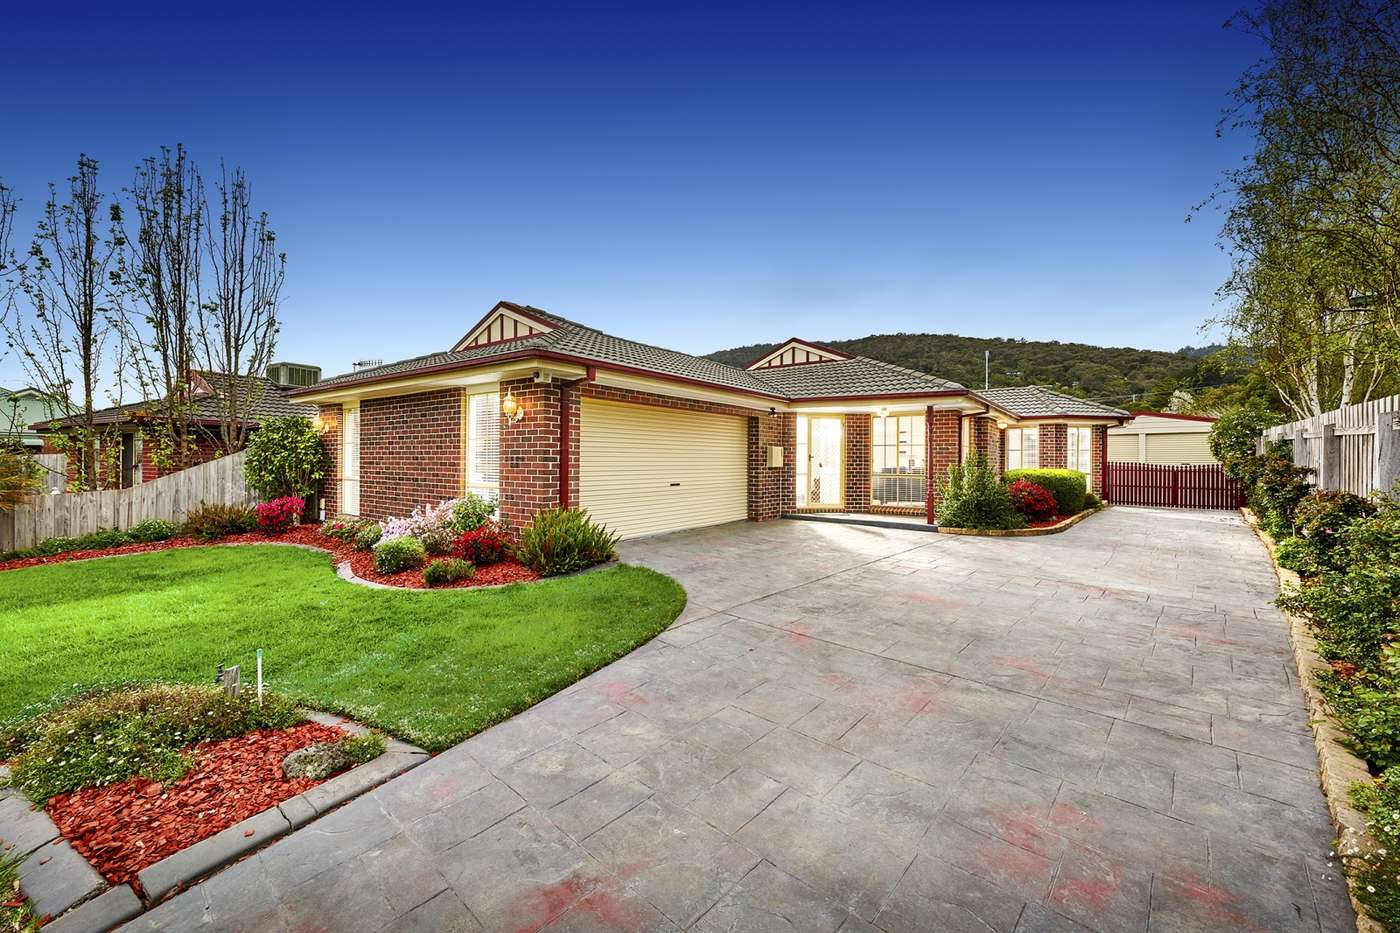 Main view of Homely house listing, 8 Huon Pine Court, Upper Ferntree Gully, VIC 3156